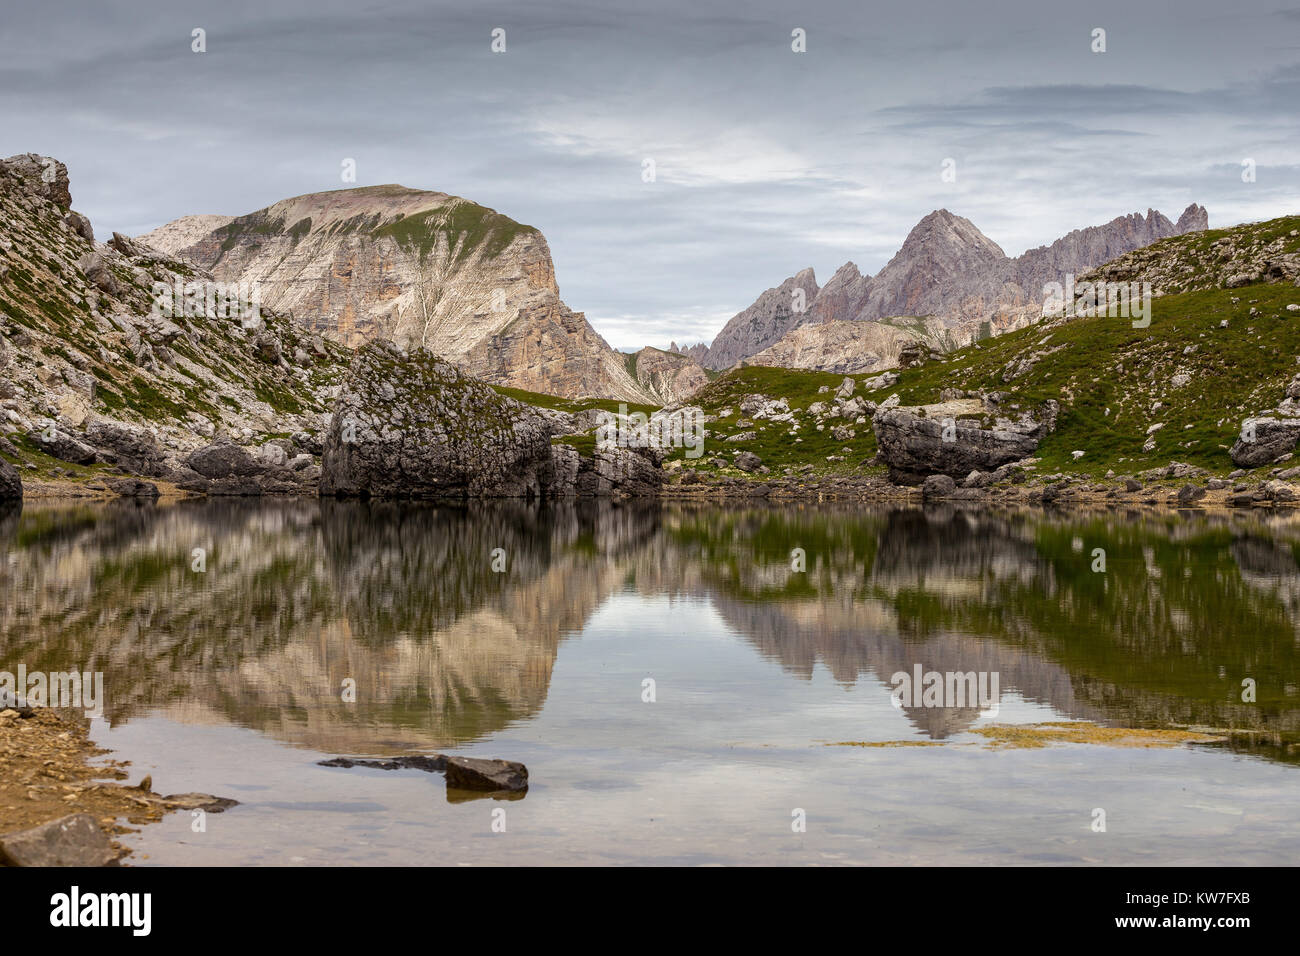 Lago di Crespeina.  Alpine lake. Puez - Odle natural park. The Dolomites. - Stock Image